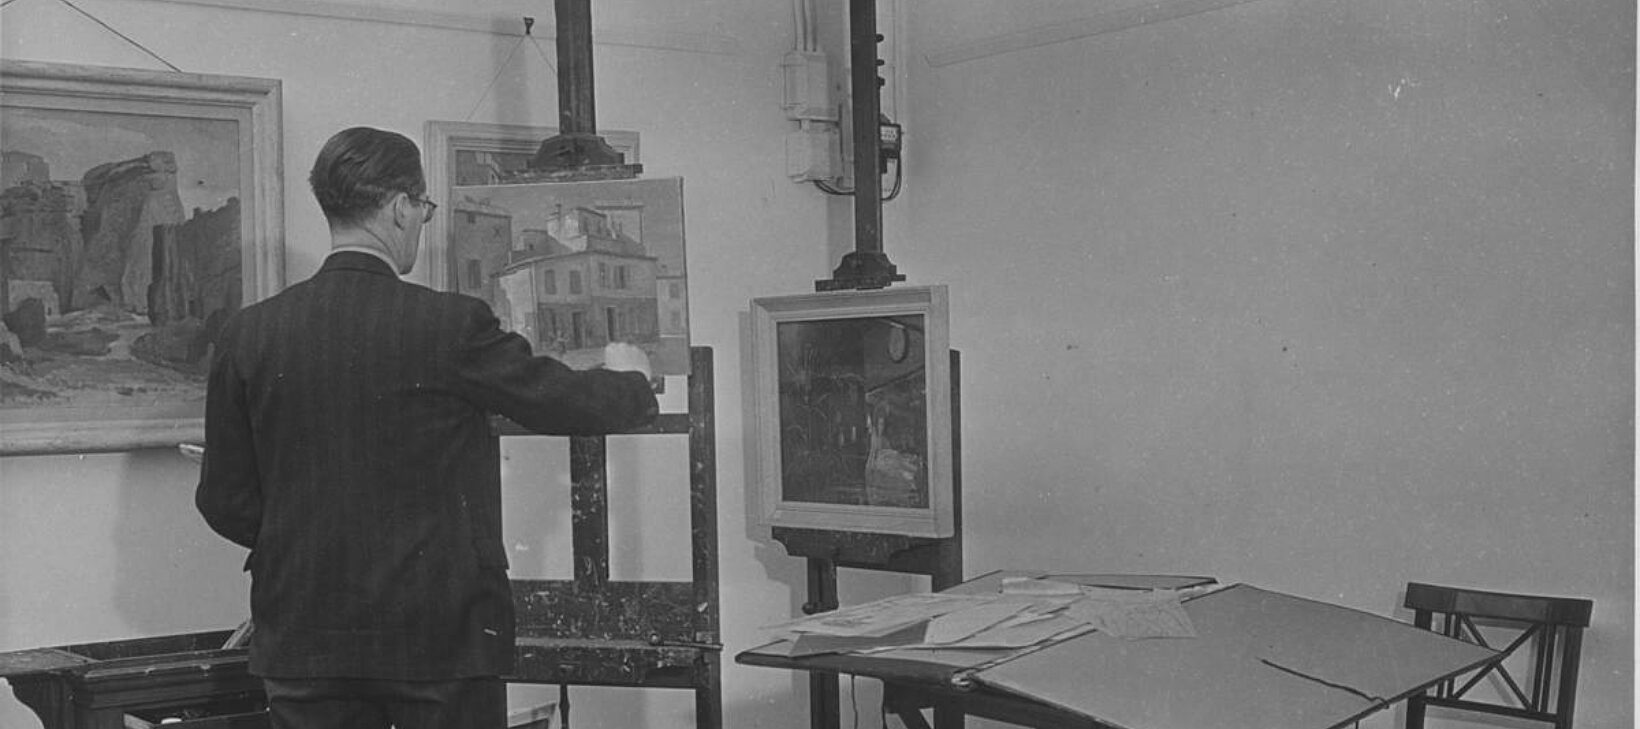 An artist stands with their back to the camera facing an easel. There are other paintings in the background and a table and chair in the room.